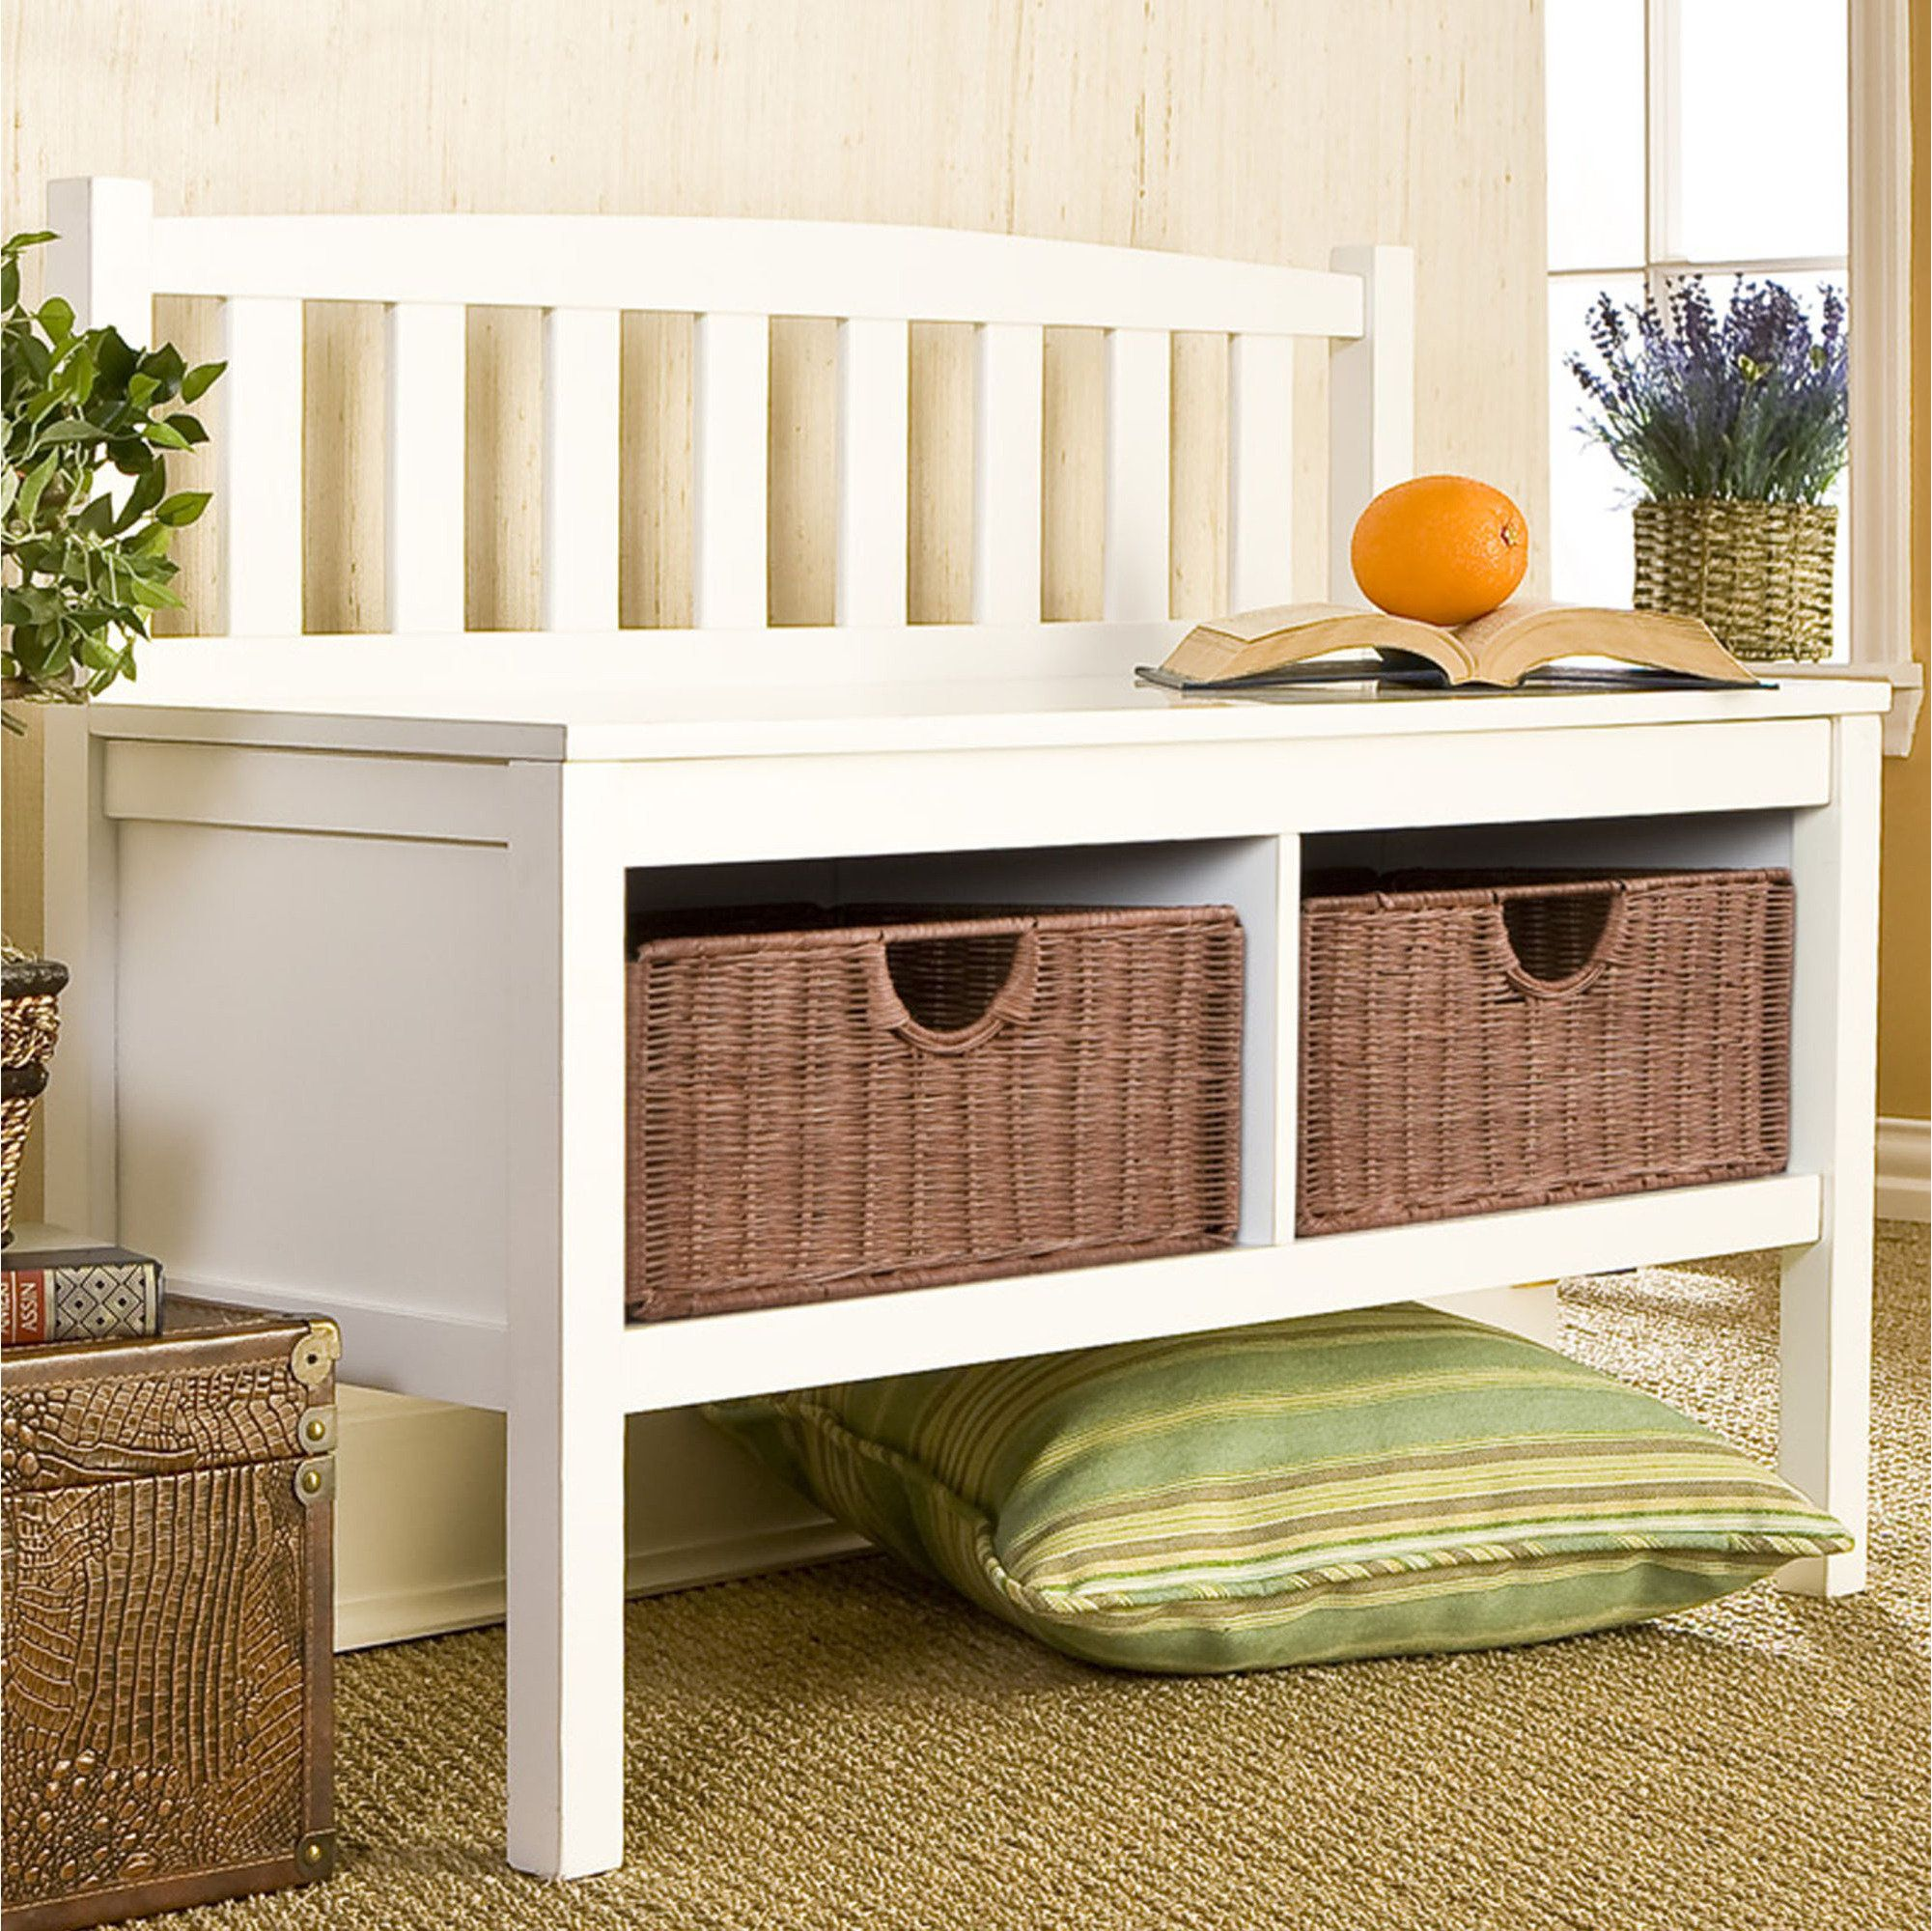 Lakehurst Storage Bench - for the front hallway?